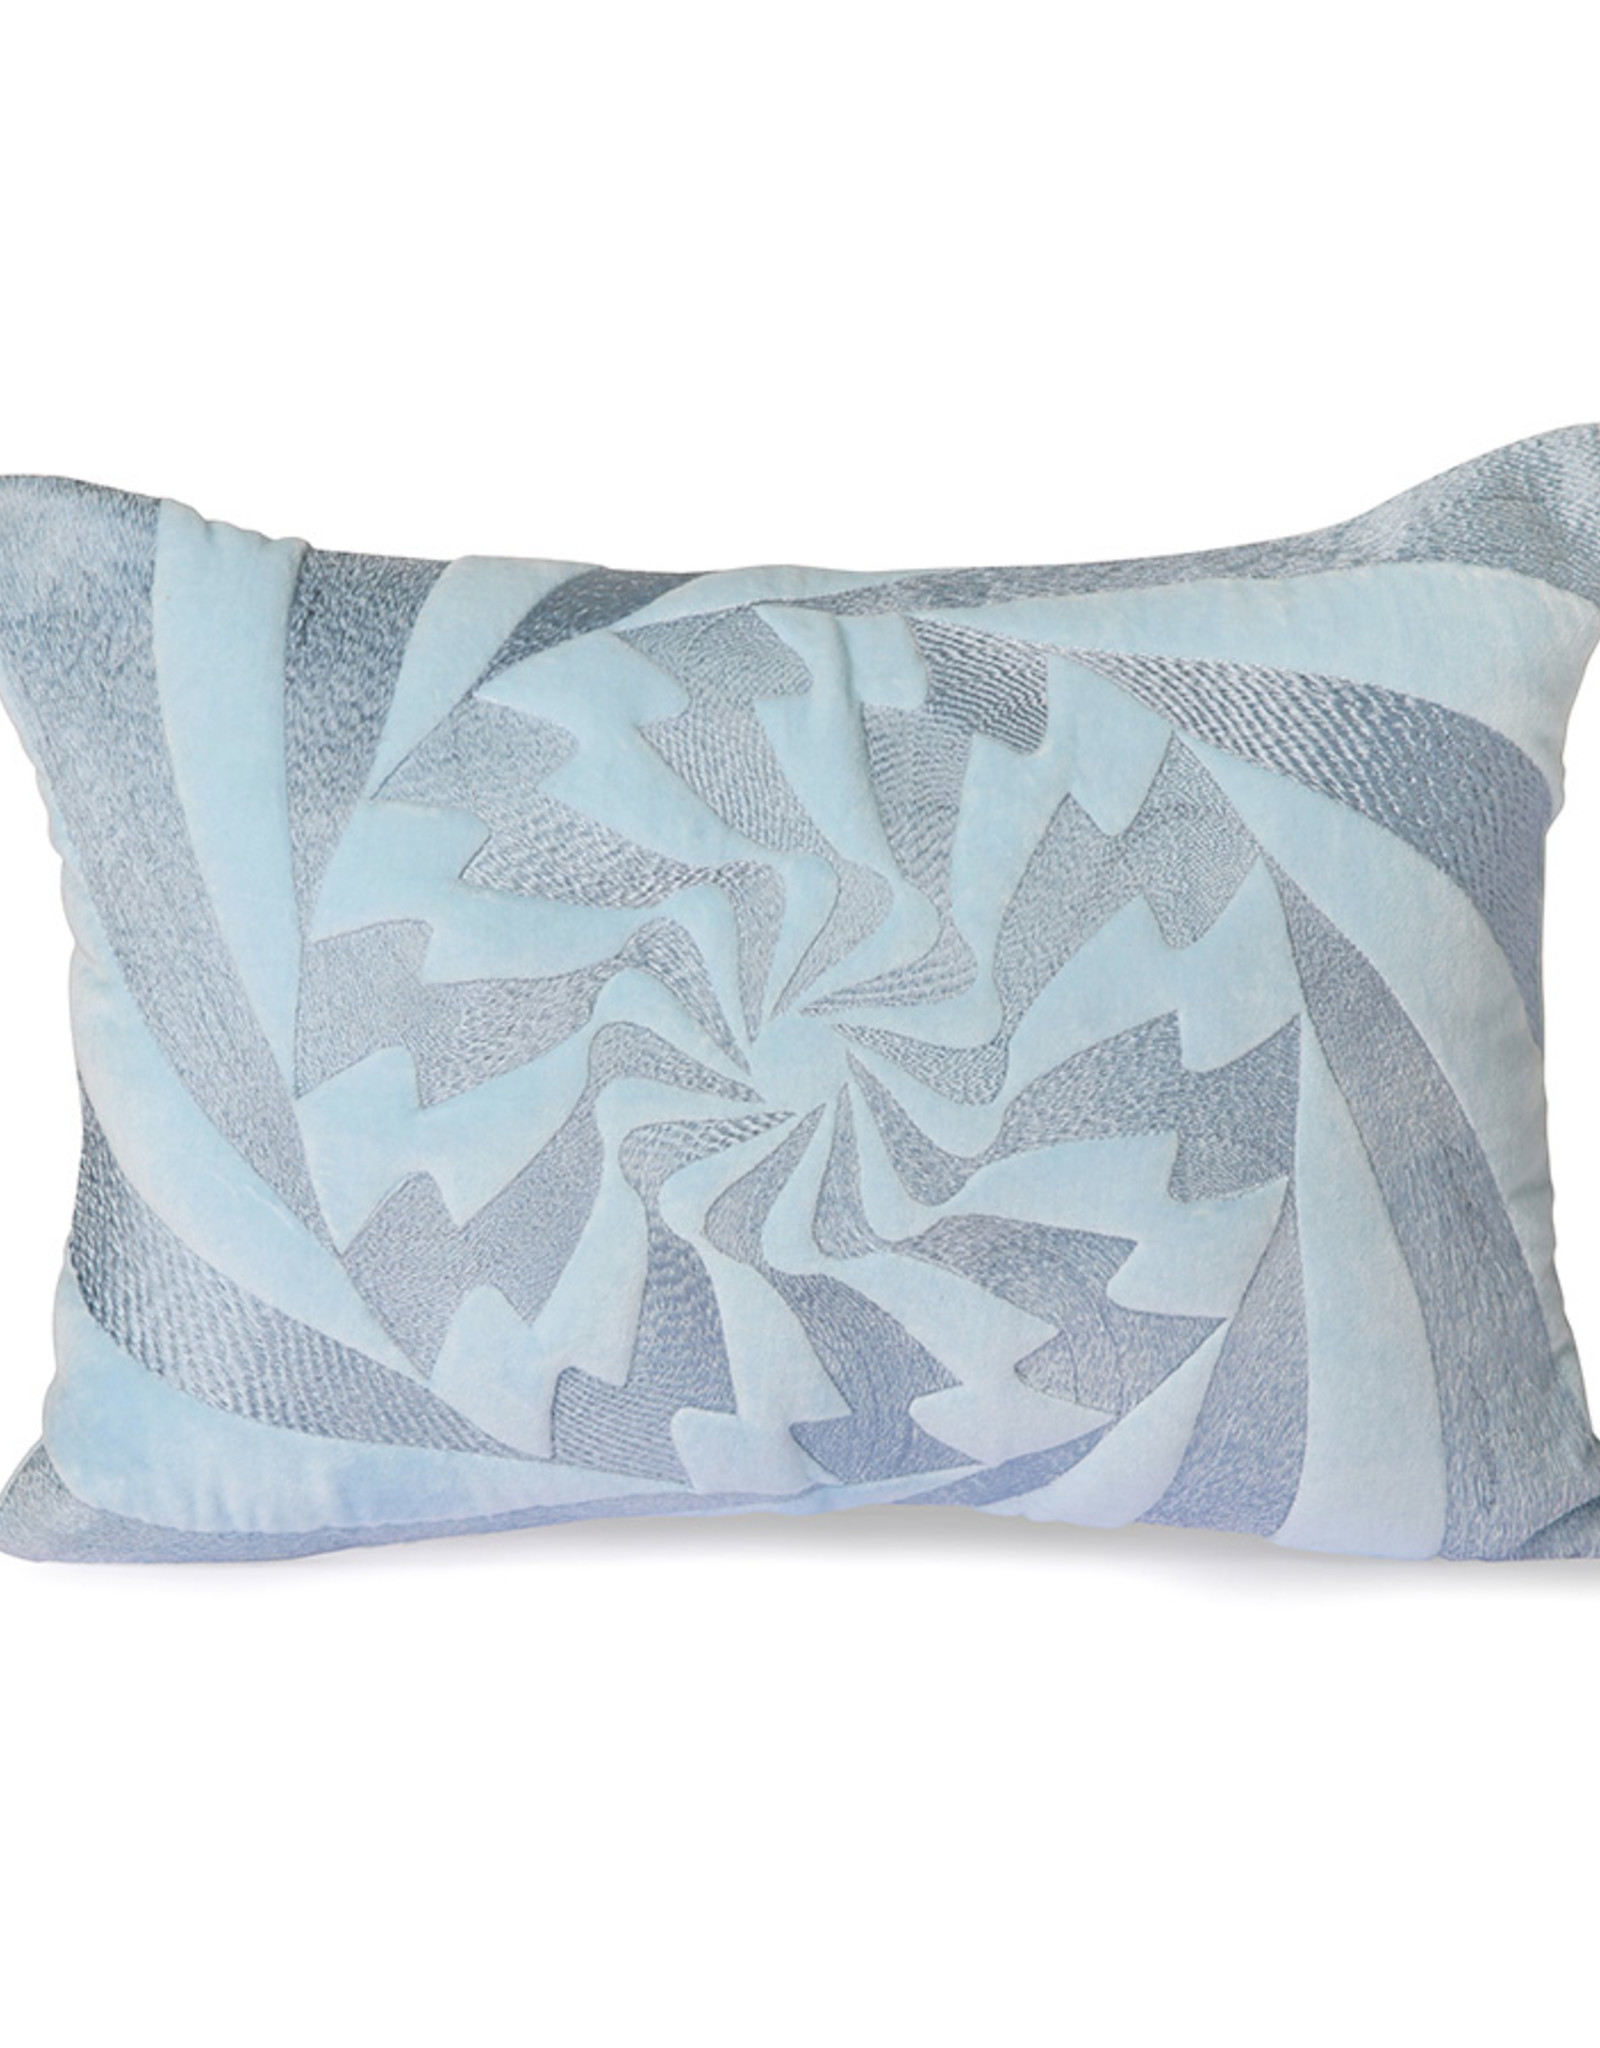 HK living Graphic embroidered cushion